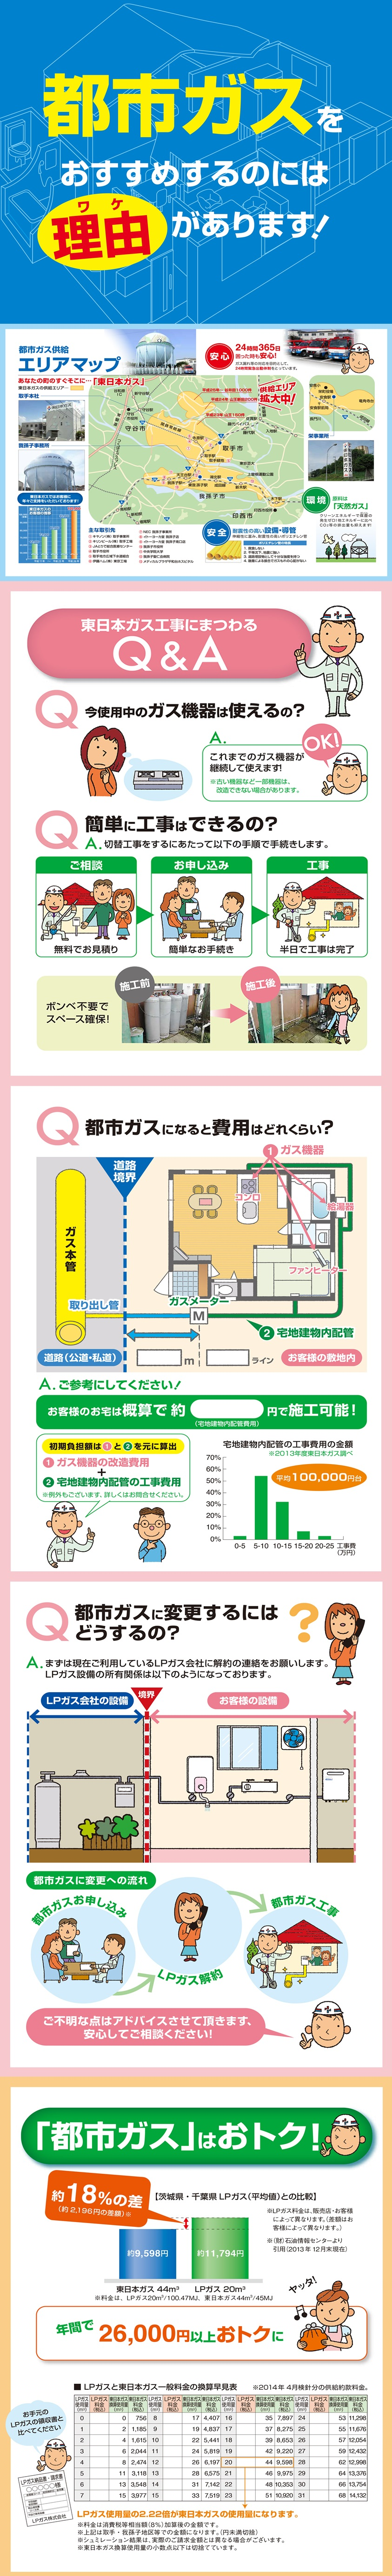 http://www.hngas.co.jp/towngas/img/img_main02.jpg